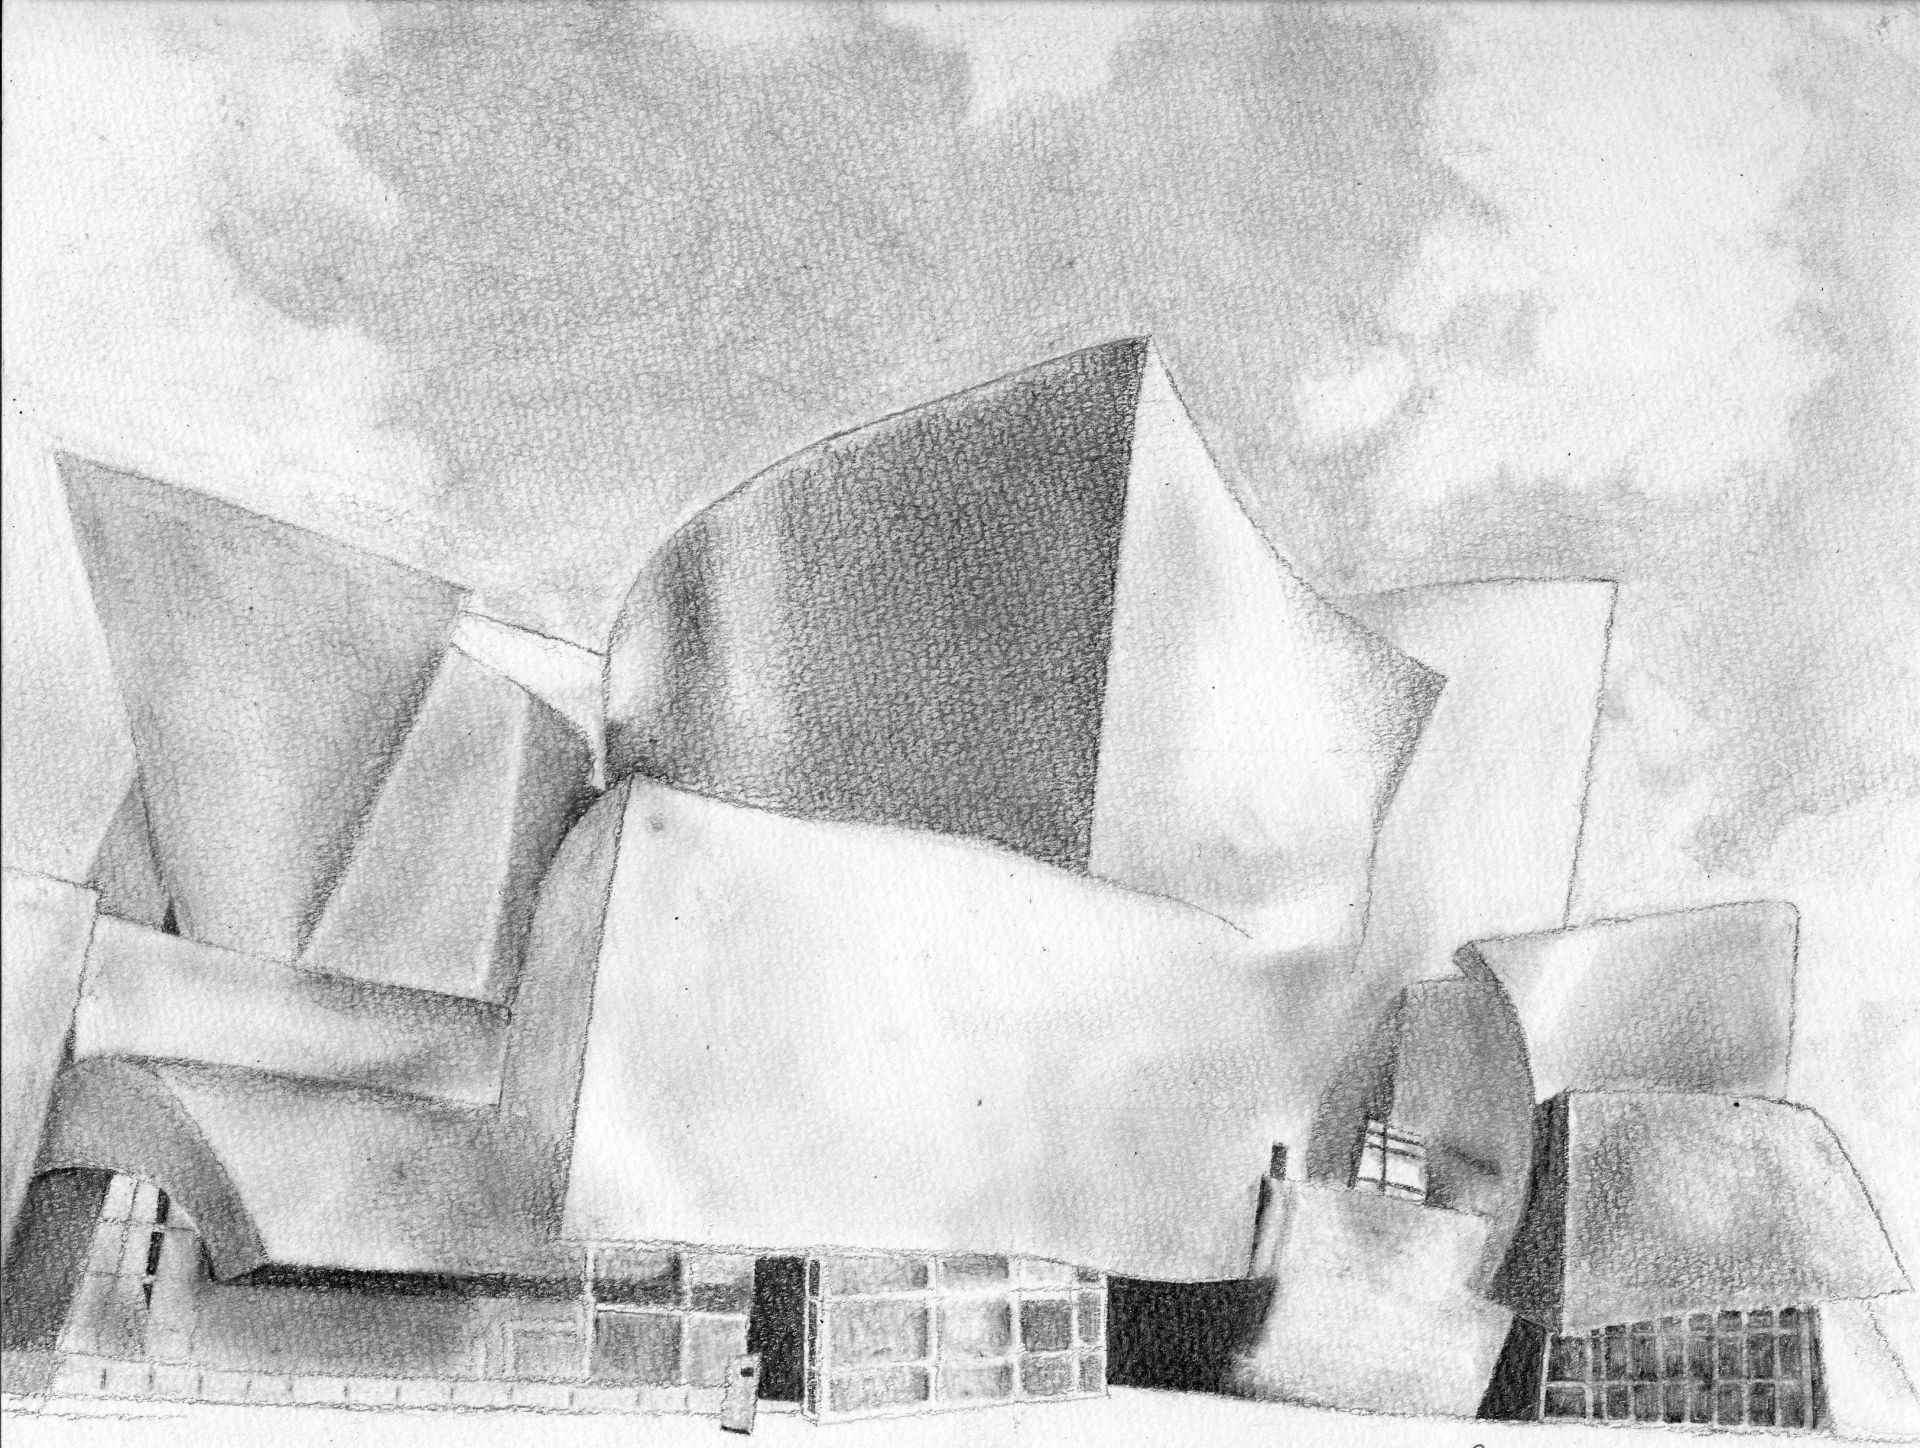 Architectural Drawing by Bianca L.